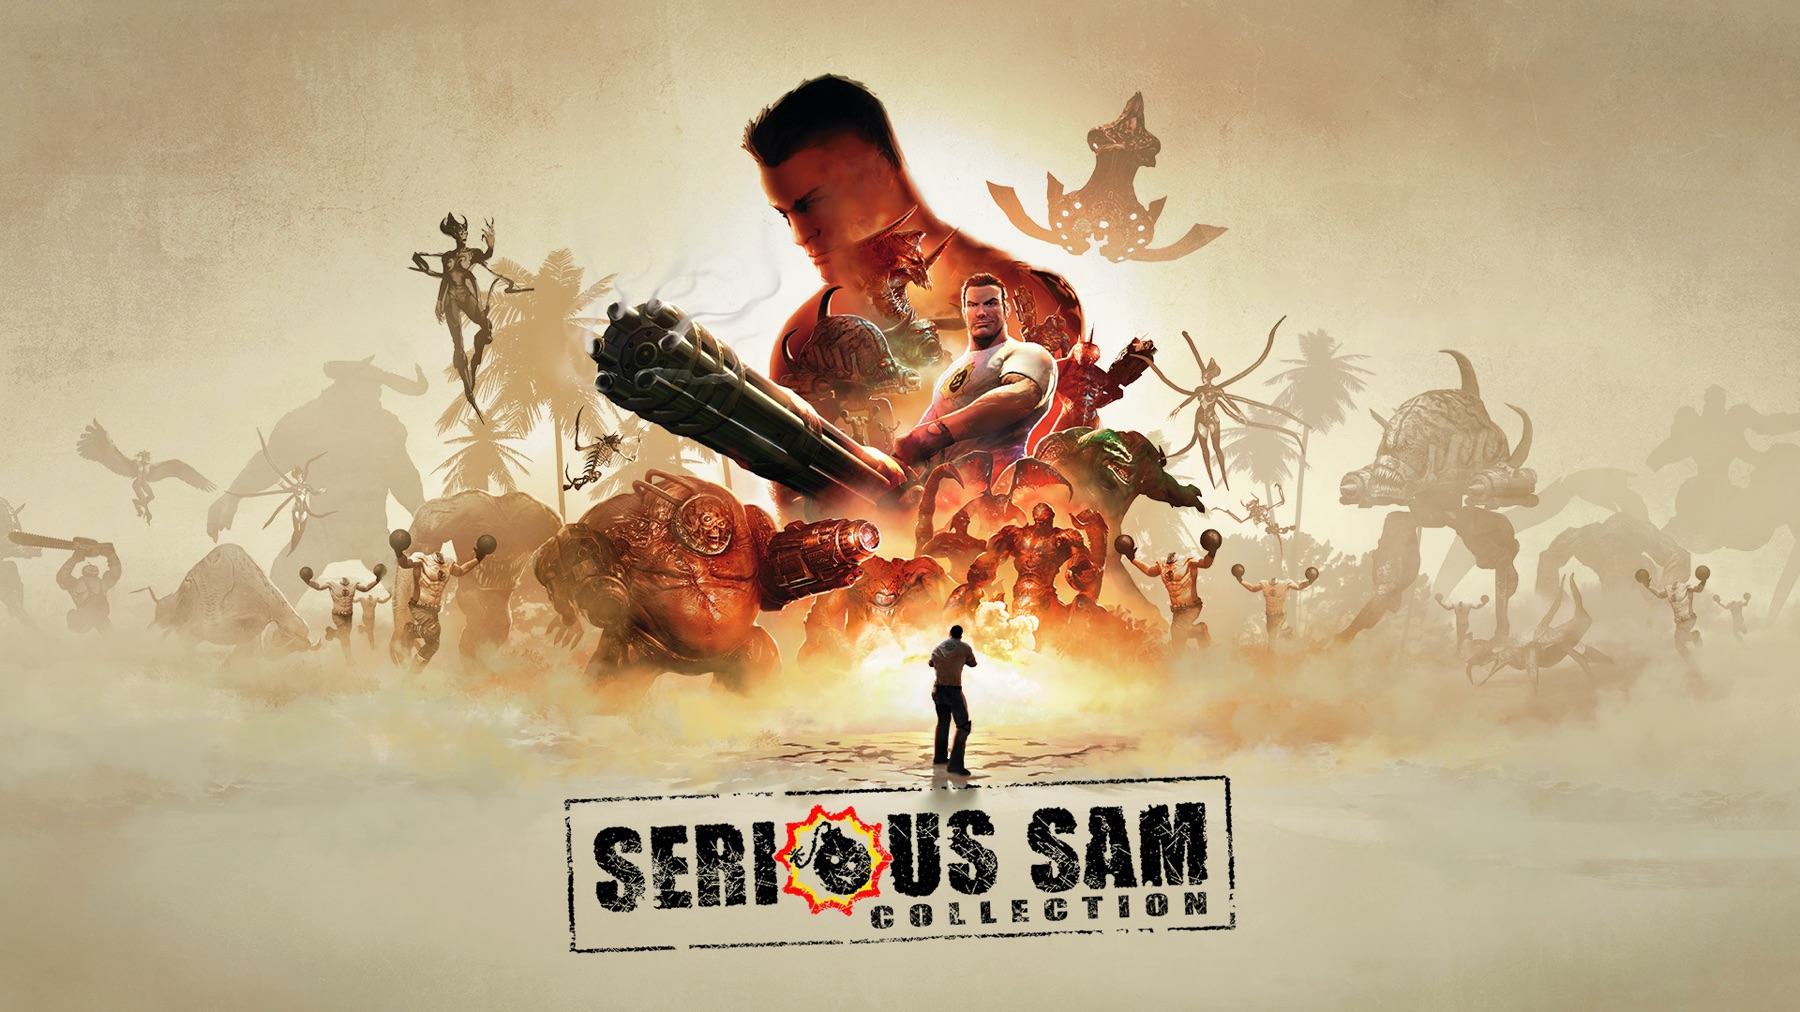 Serious Sam Collection Drops Next Week on Nintendo Switch